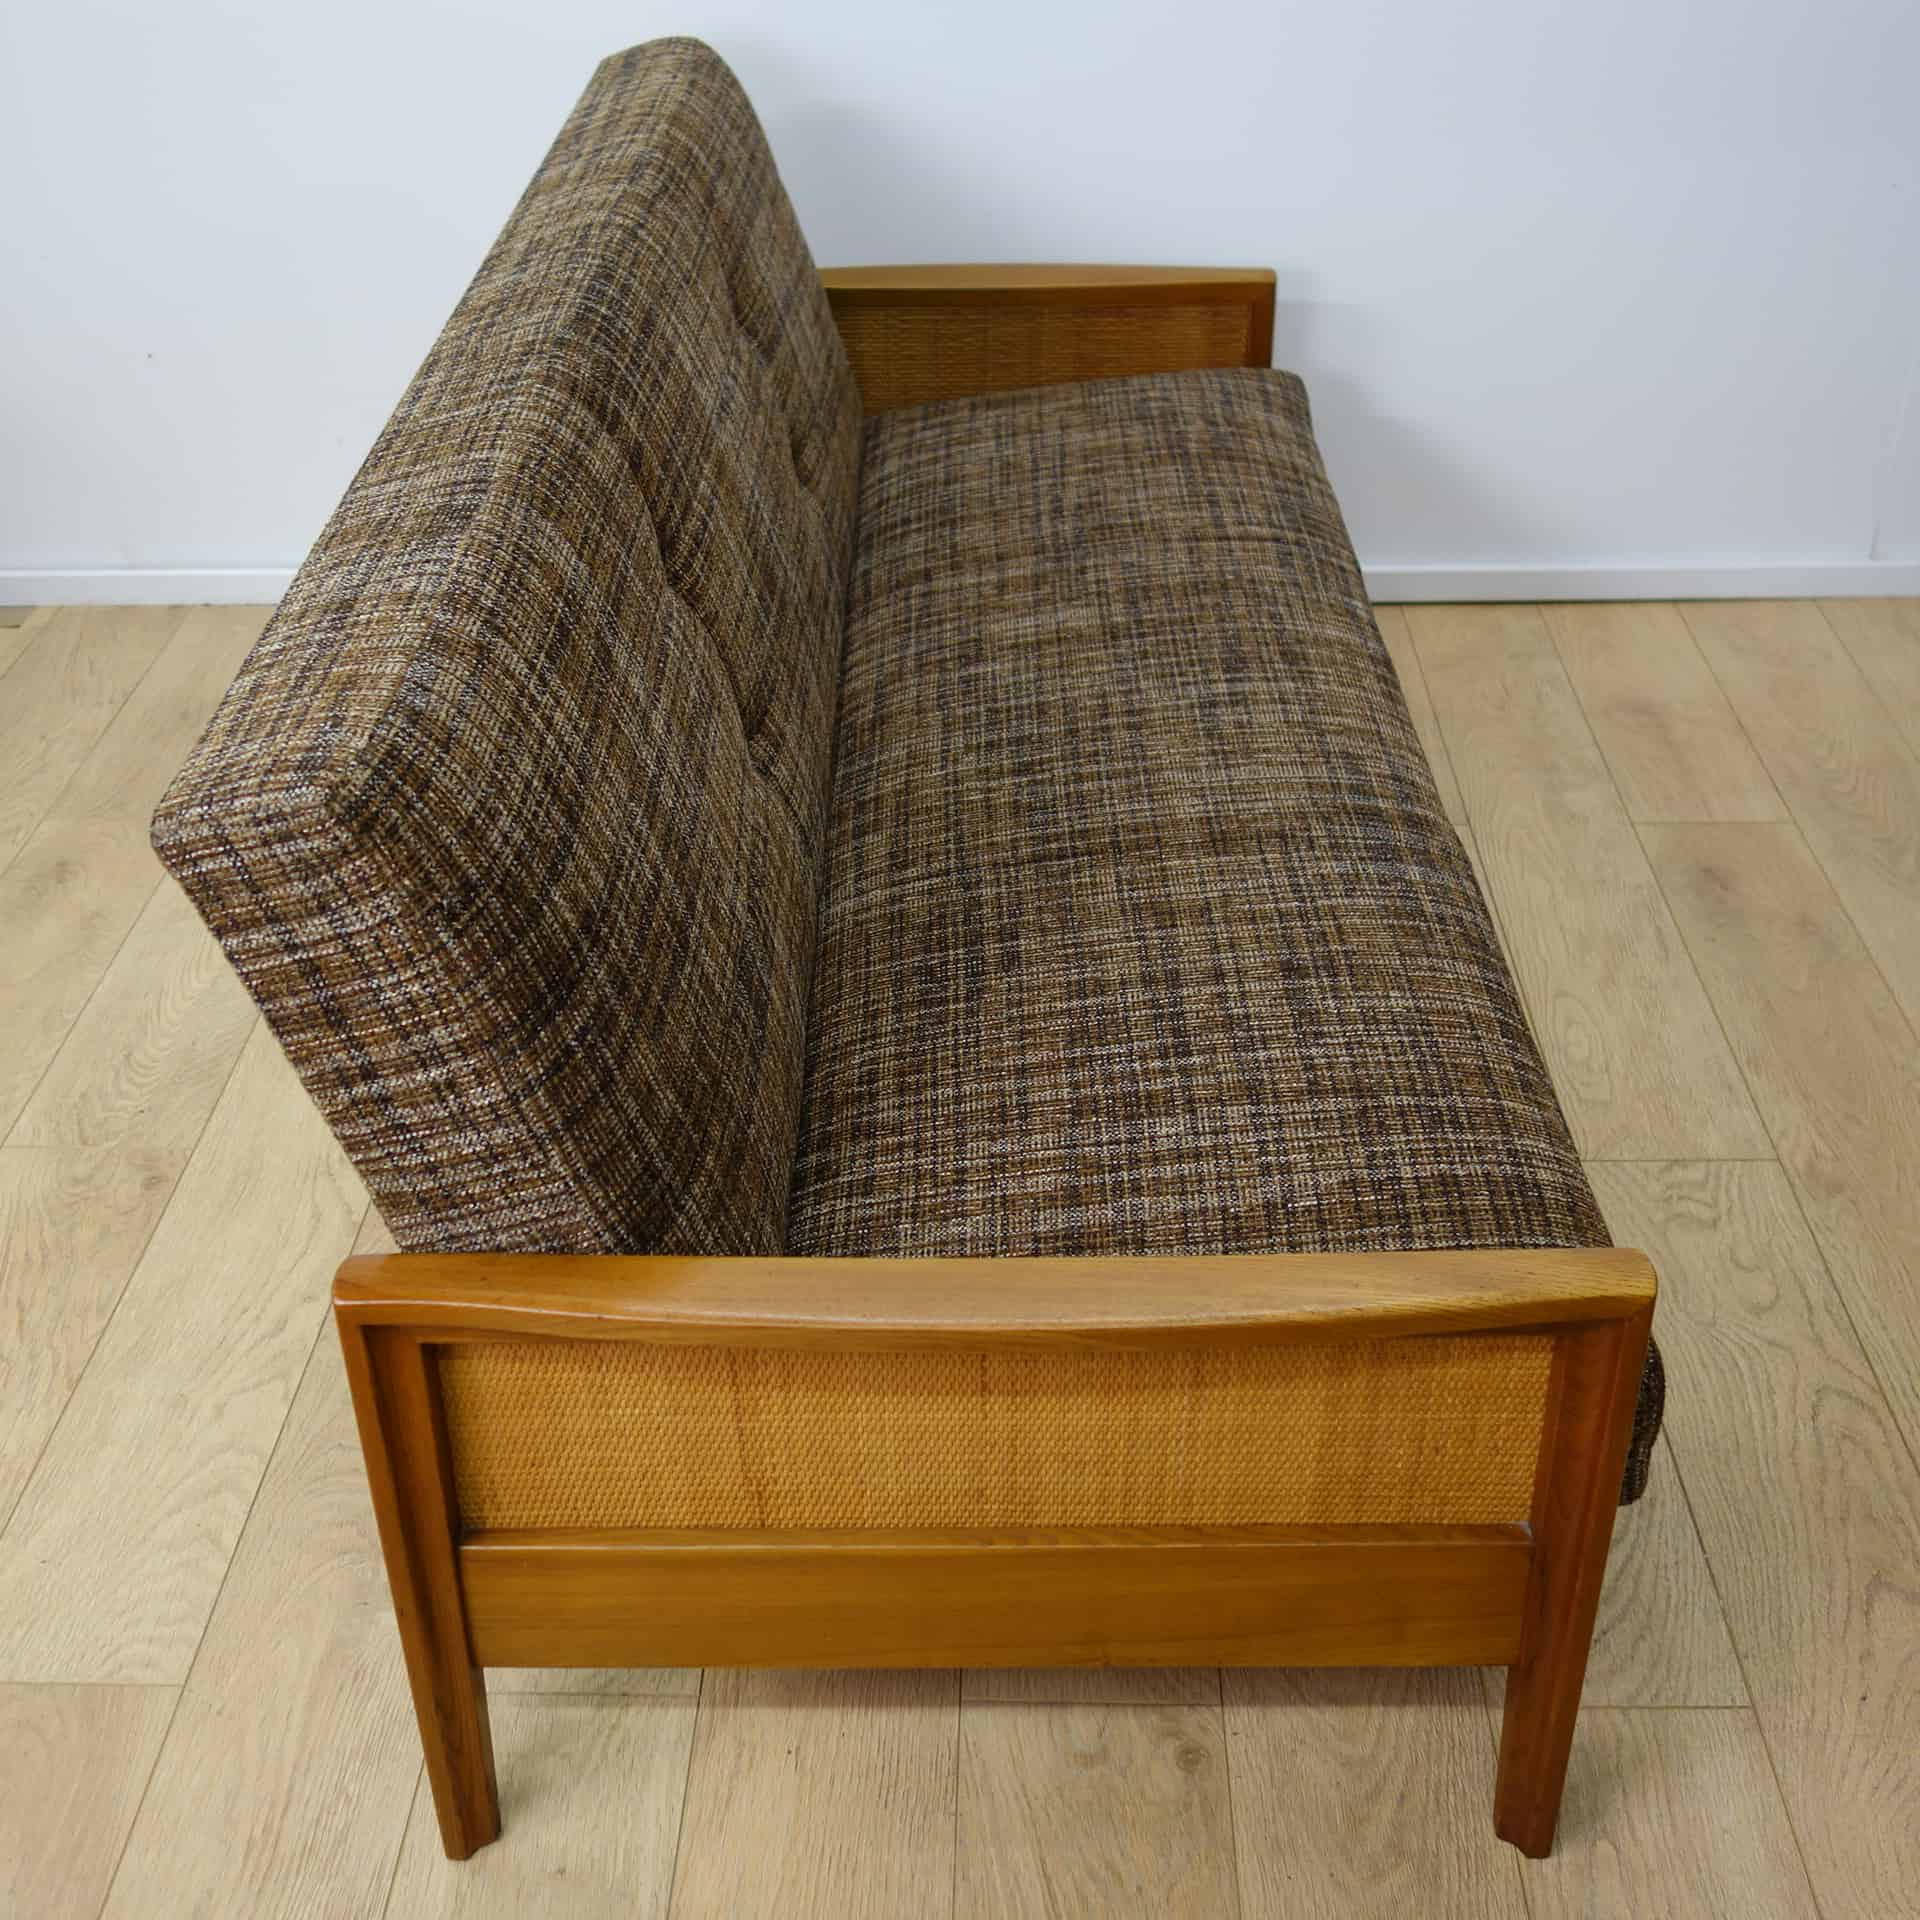 1960s sofa bed with rattan sides